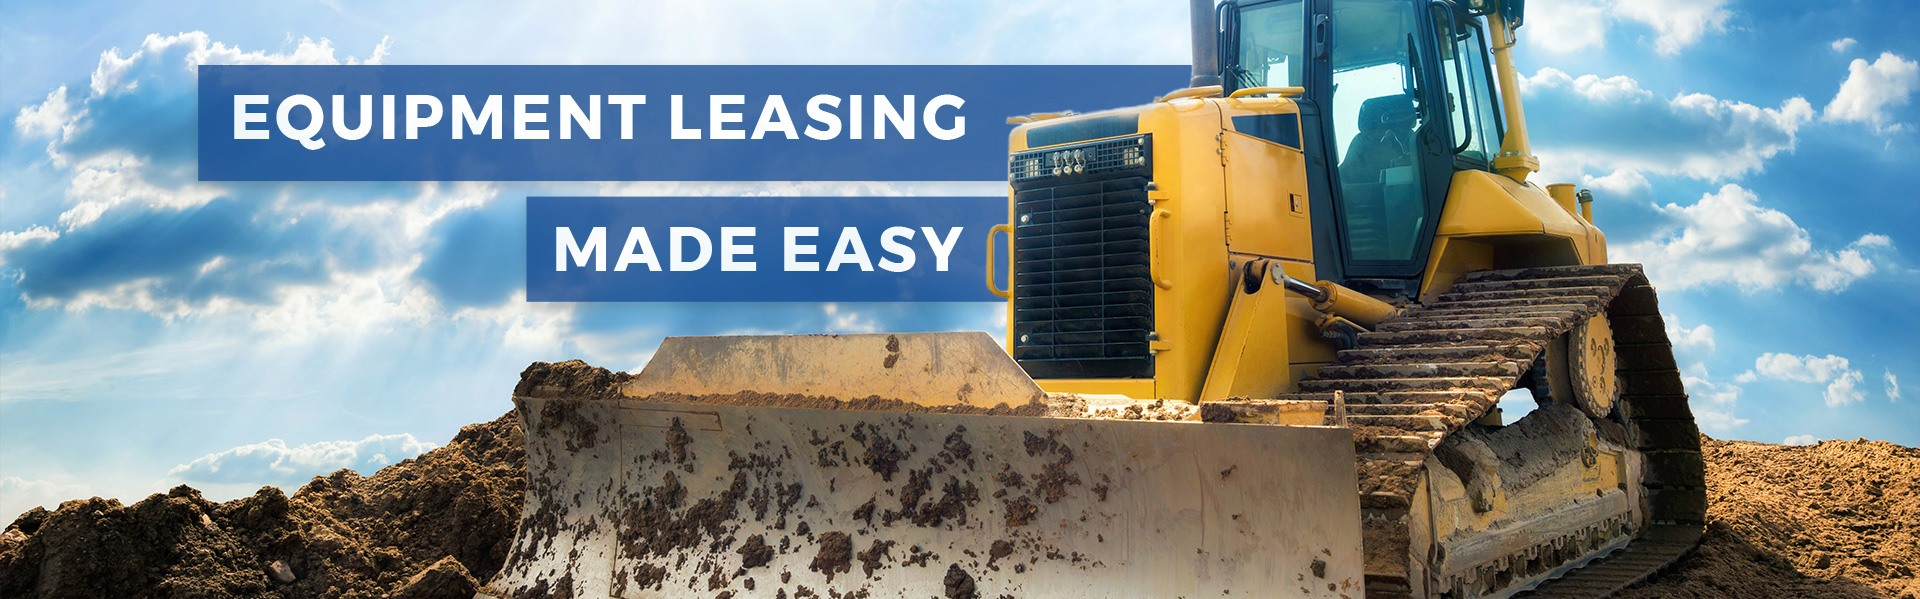 ALL Equipment Leasing